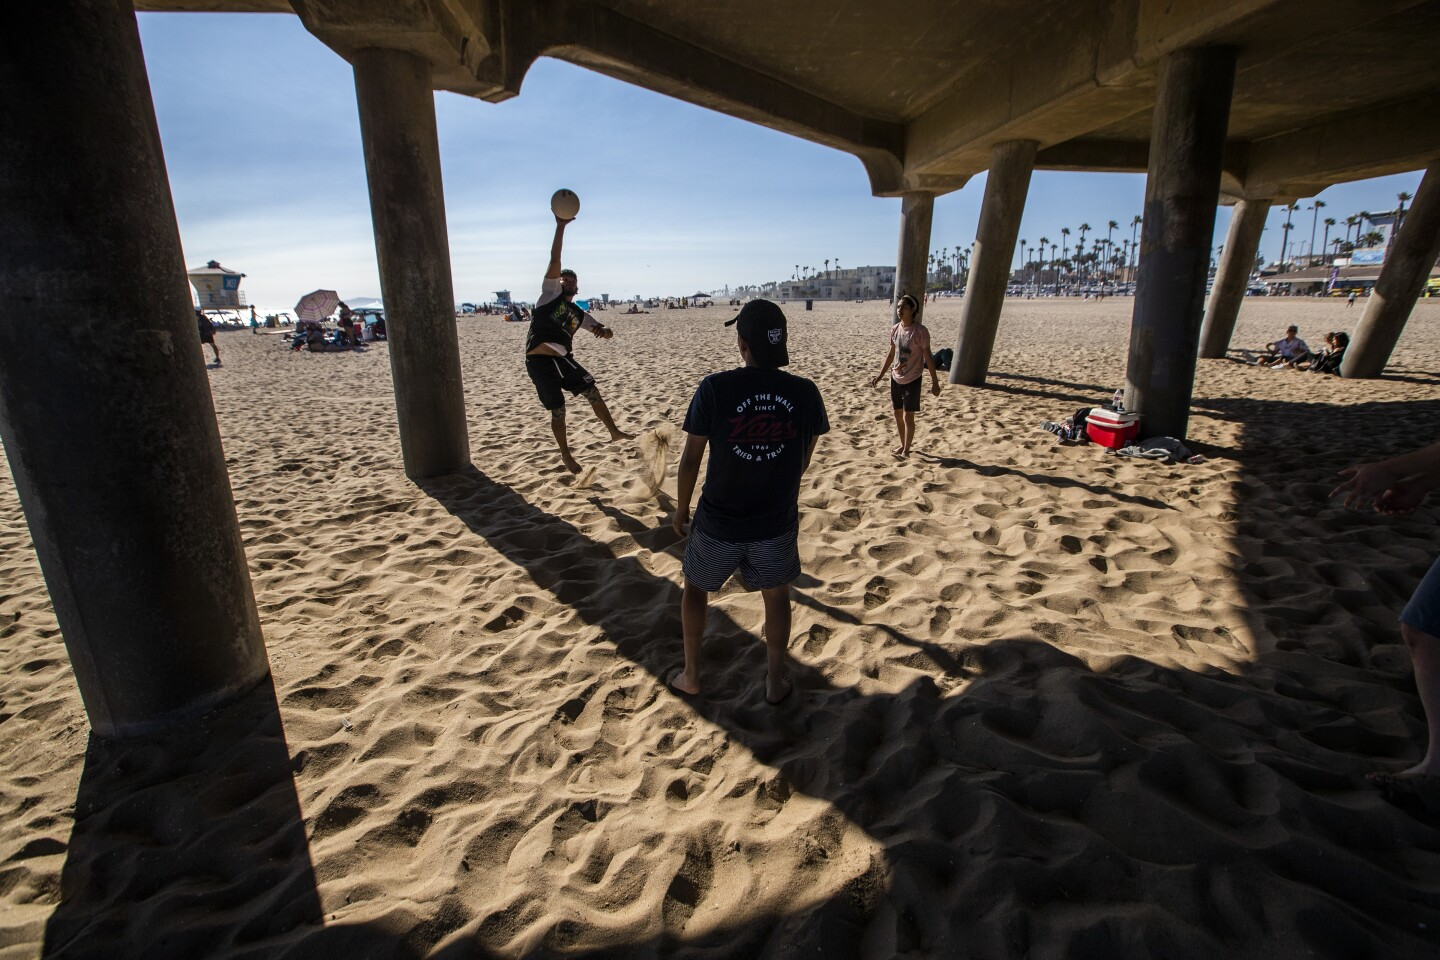 HUNTINGTON BEACH, CA - JUNE 10: Jorge Tafolla, of Los Angeles, hits a volleyball around with friends in the shade of the pier to cool off amid high temperatures Wednesday, June 10, 2020 in Huntington Beach, CA. A heat advisory will be in effect today from 11 in the morning until 7 tonight throughout Southern California. (Allen J. Schaben / Los Angeles Times)